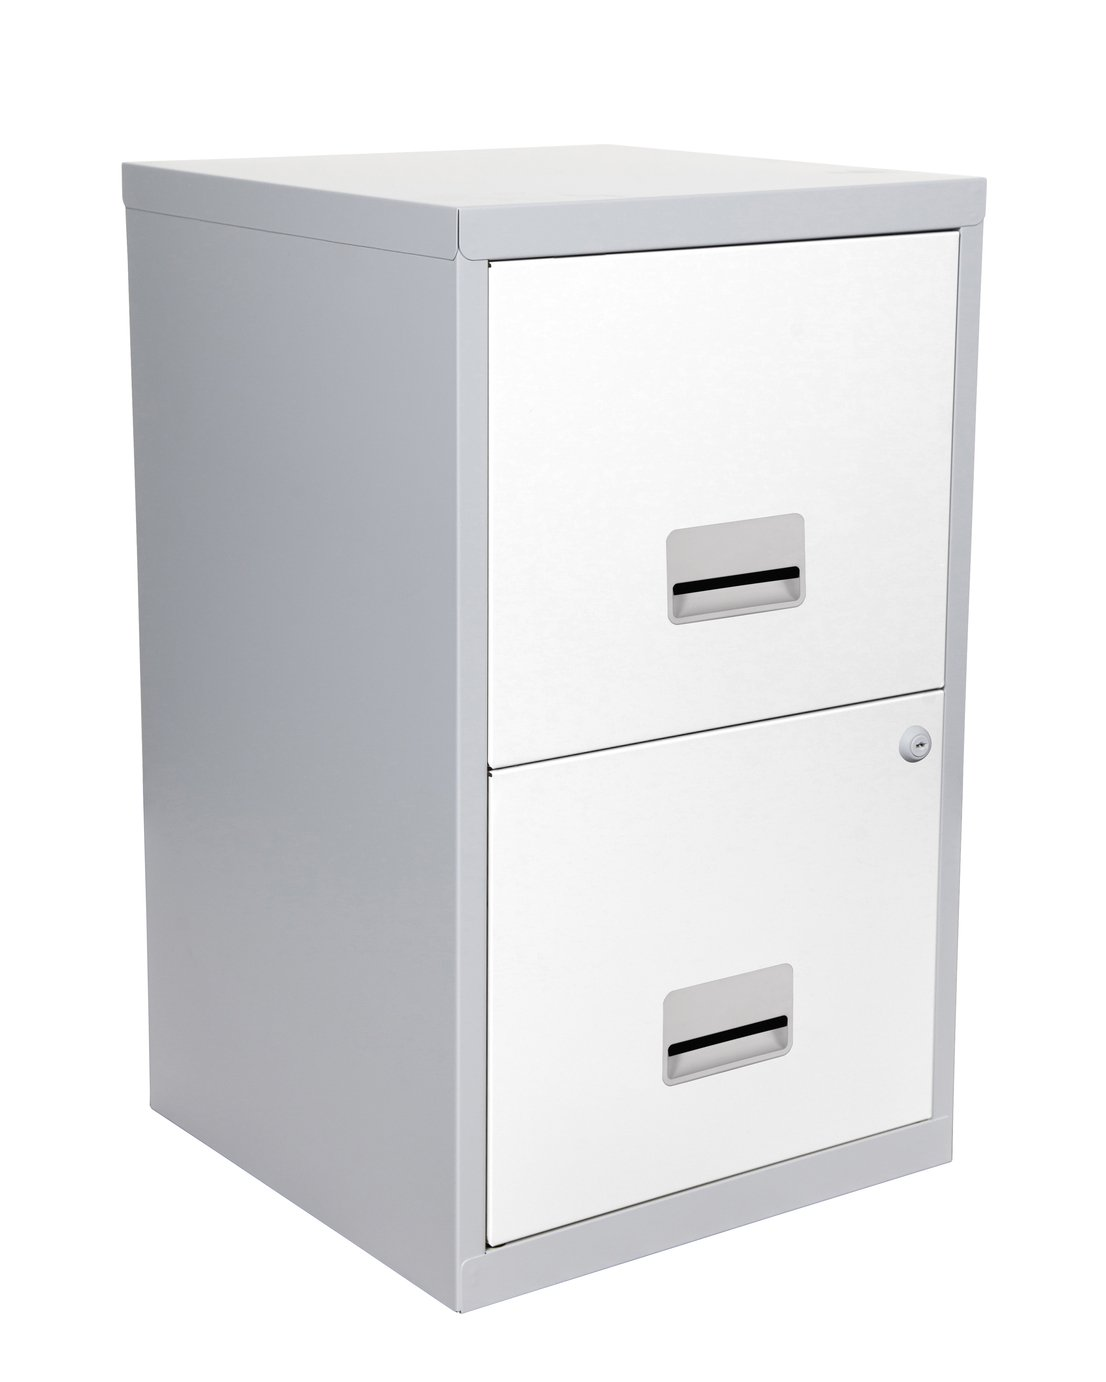 office metal cabinets. 2 drawer metal filing cabinet - silver and white office cabinets